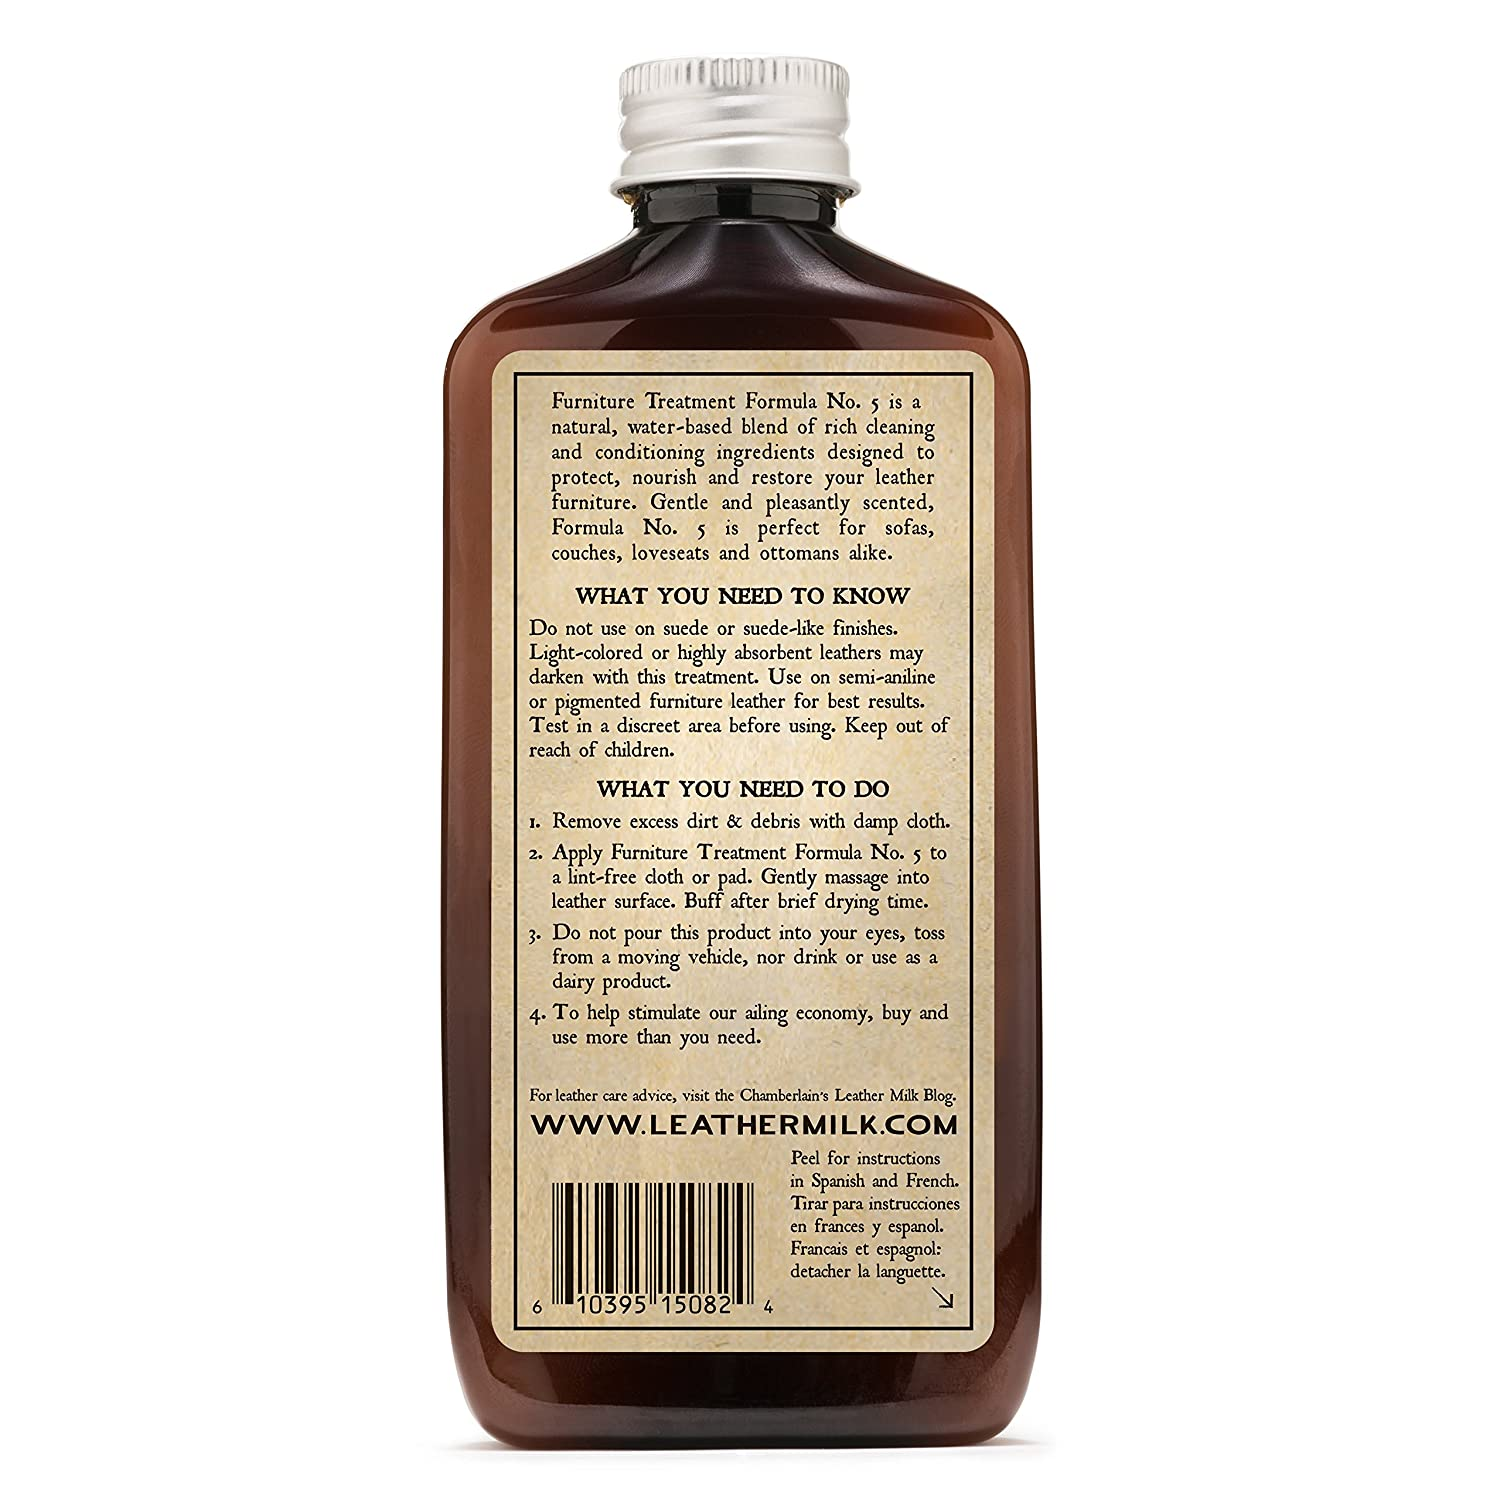 Amazon.com: Leather Milk Leather Furniture Conditioner And Cleaner    Furniture Treatment No. 5   For All Natural, Non Toxic Leather Care. Made  In The USA.